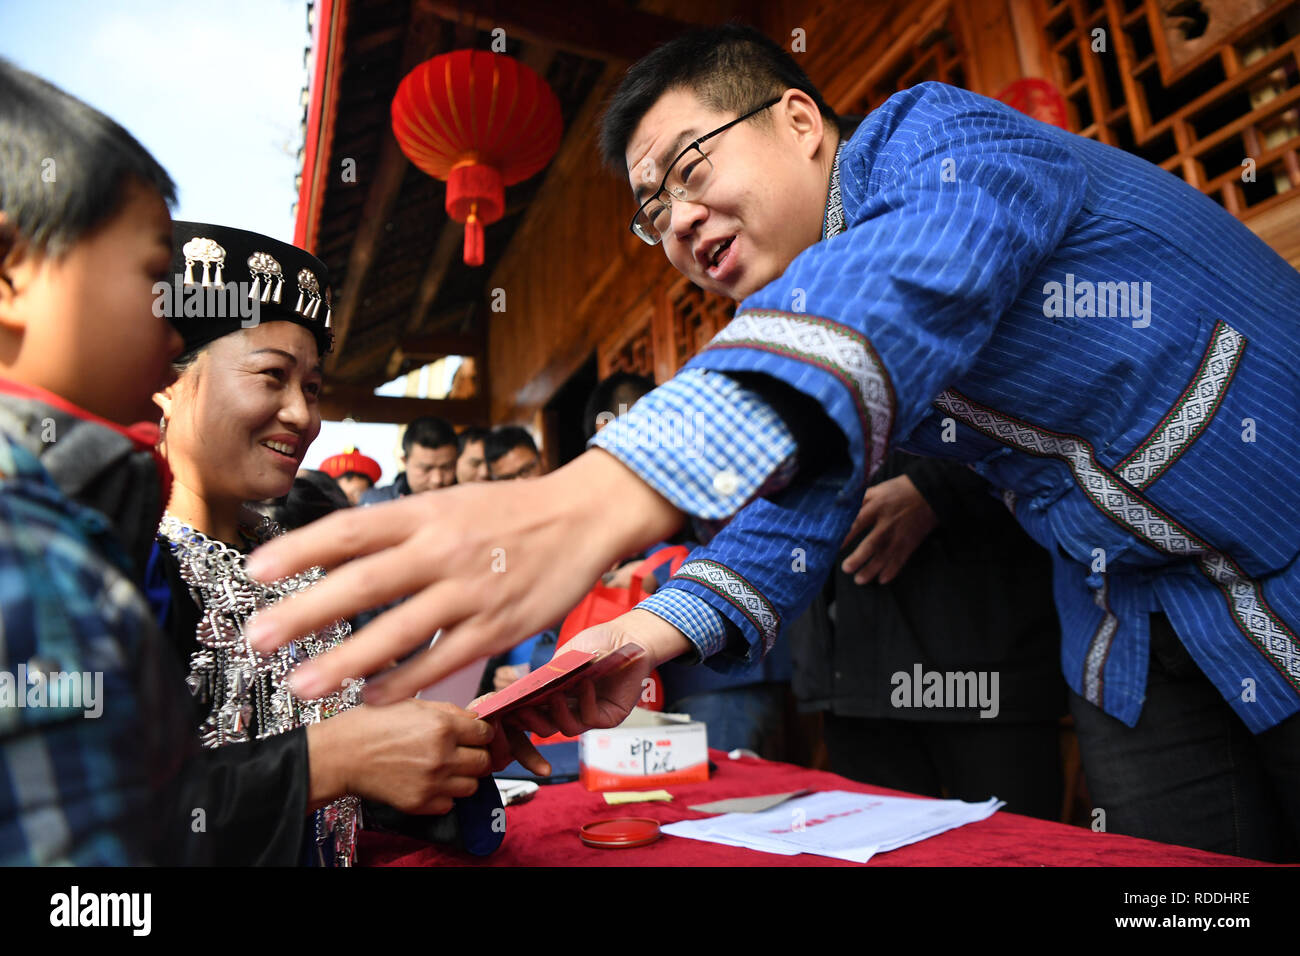 Huayuan, China's Hunan Province. 17th Jan, 2019. A villager receives the money she earned from dividend in Shibadong Village of Huayuan County, central China's Hunan Province, Jan. 17, 2019. Villagers from Shibadong celebrate their traditional New Year in various ways. Credit: Xue Yuge/Xinhua/Alamy Live News - Stock Image